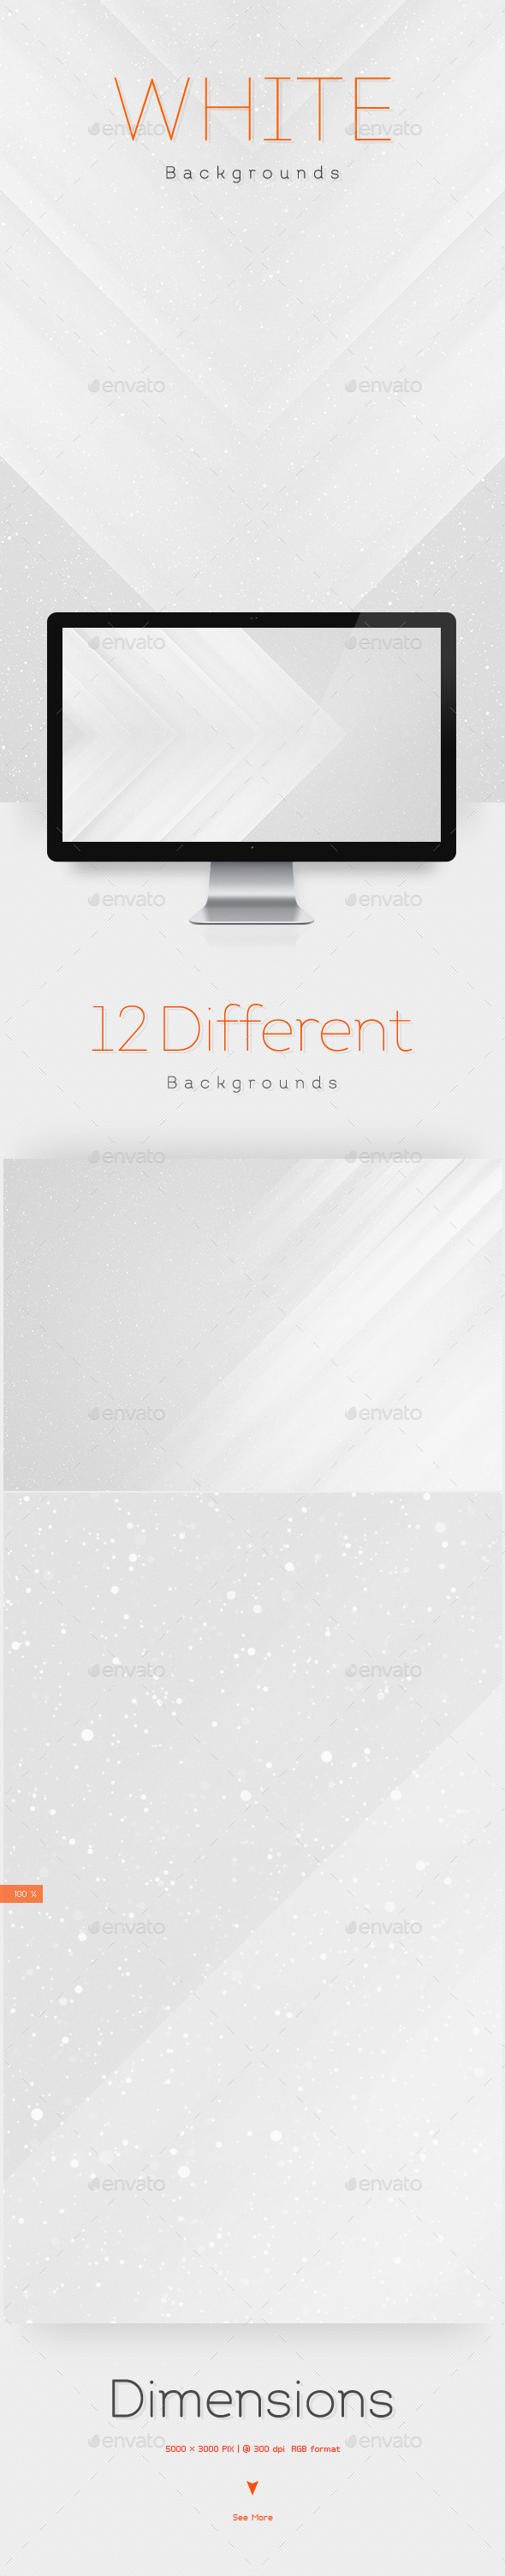 White Abstract Backgrounds V2 - Urban Backgrounds